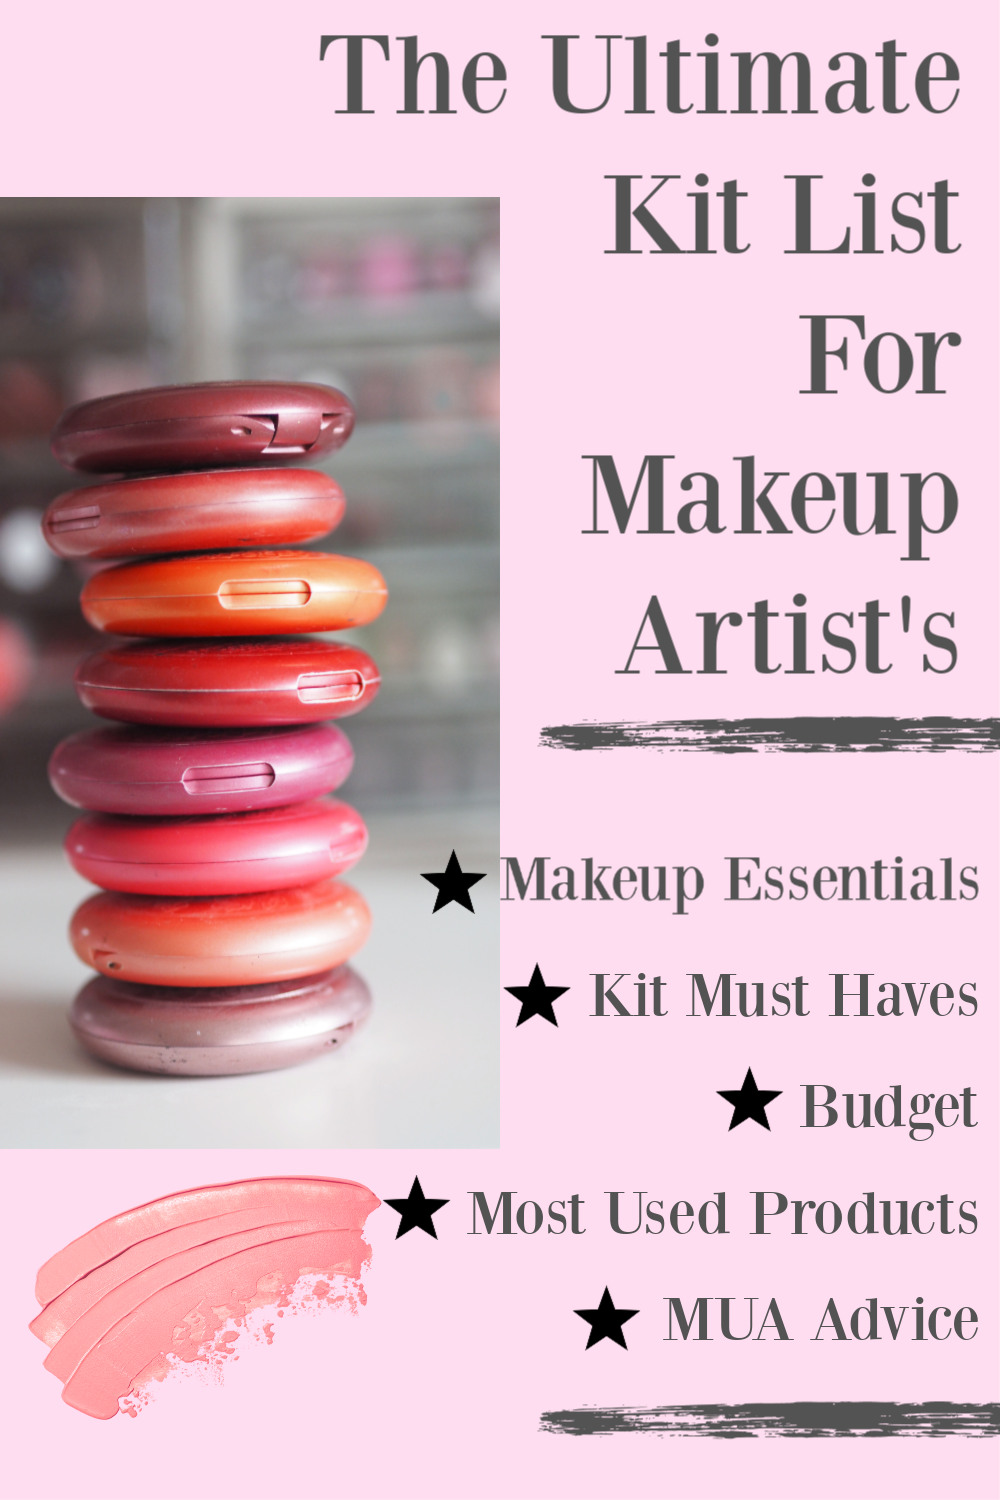 The Ultimate Kit List for Professional Makeup Artists in